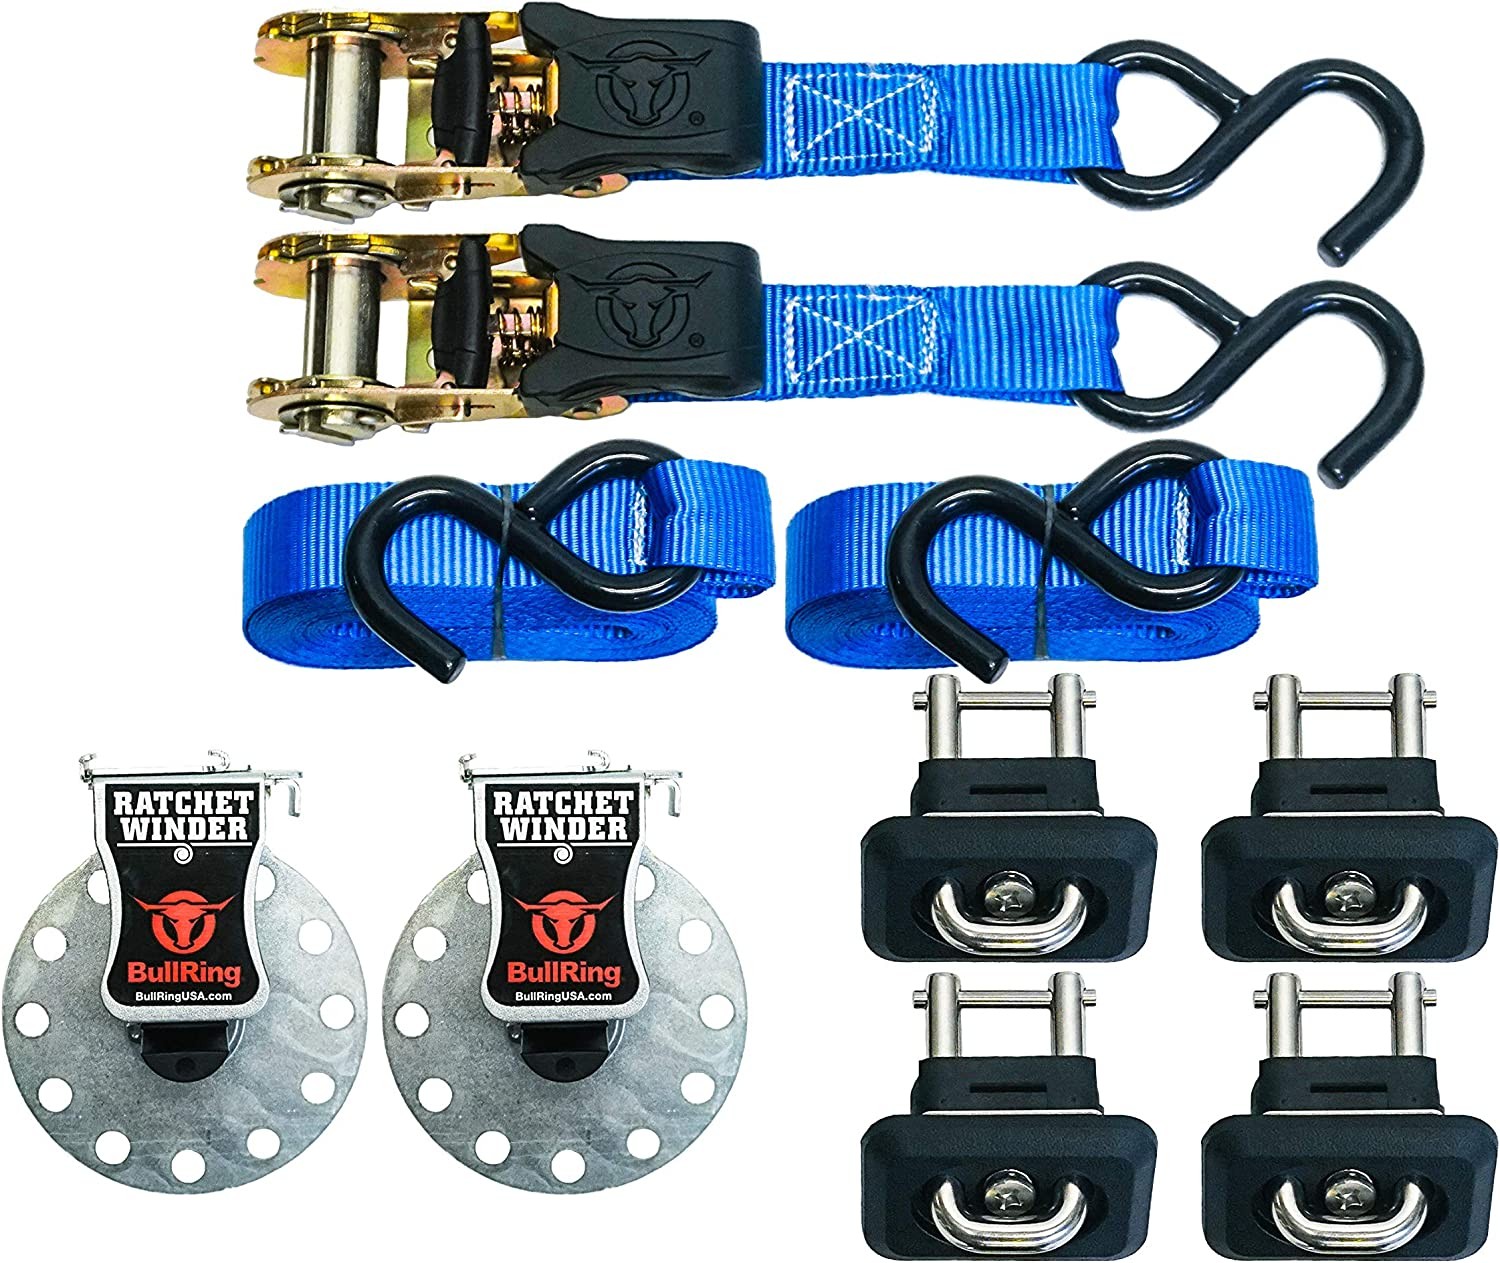 Cargo Combo 2 Pair 1001 GM Tie Downs with 2 Ratchet Straps 1 x 15 and 2 New Ratchet Winders Bull Ring Tie Downs